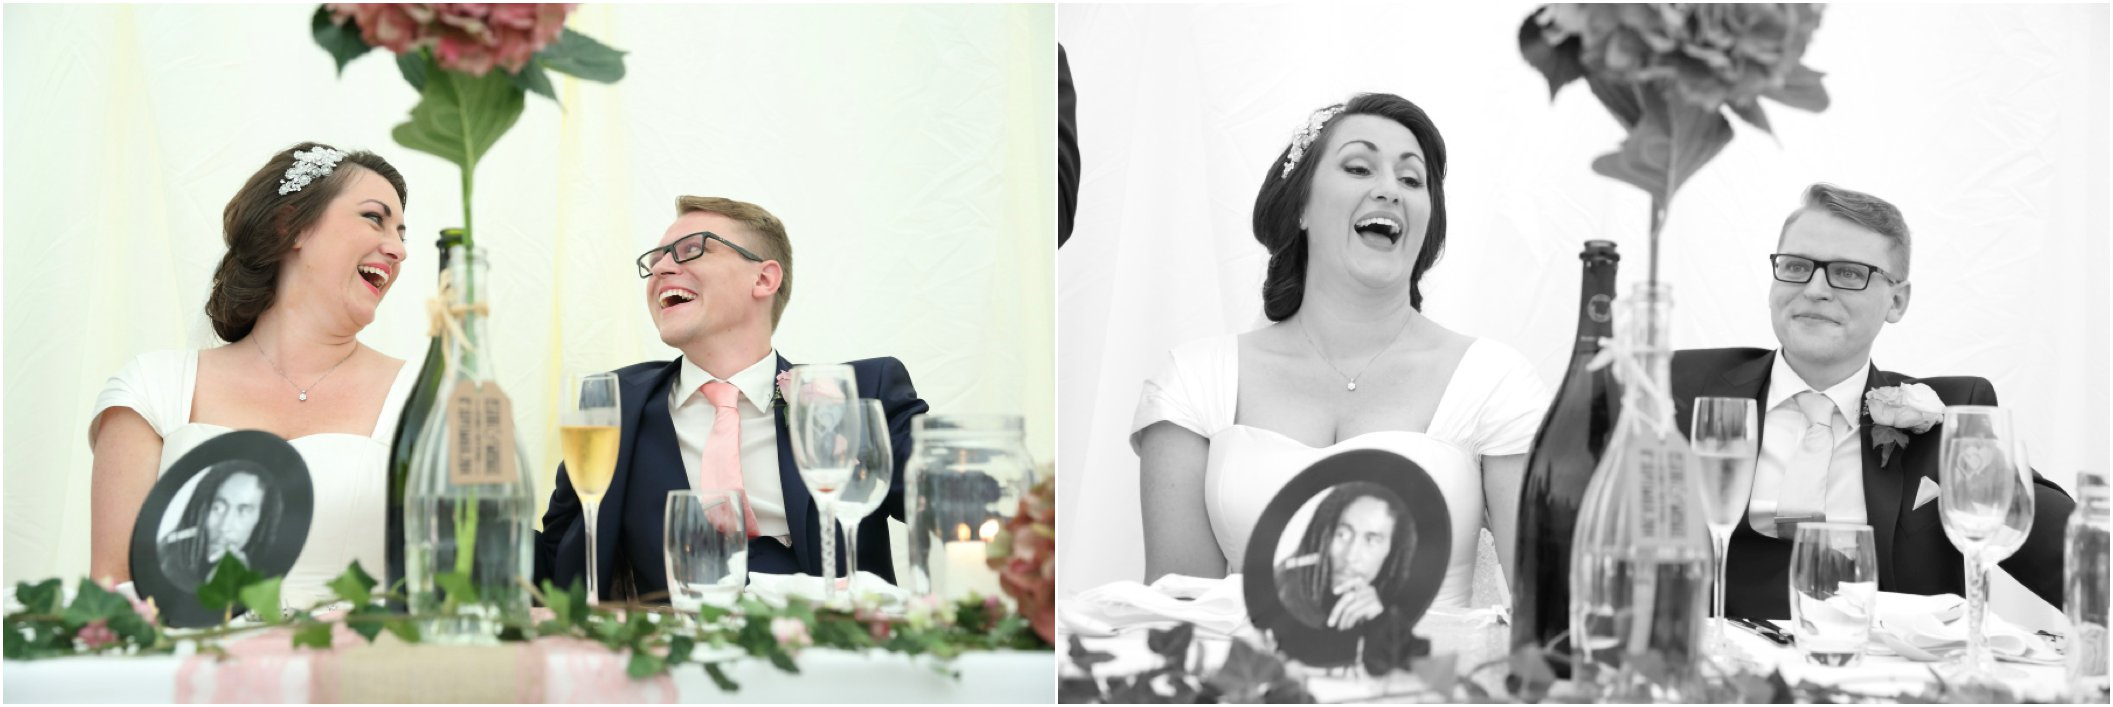 essex wedding photo laughing bride and groom at speeches